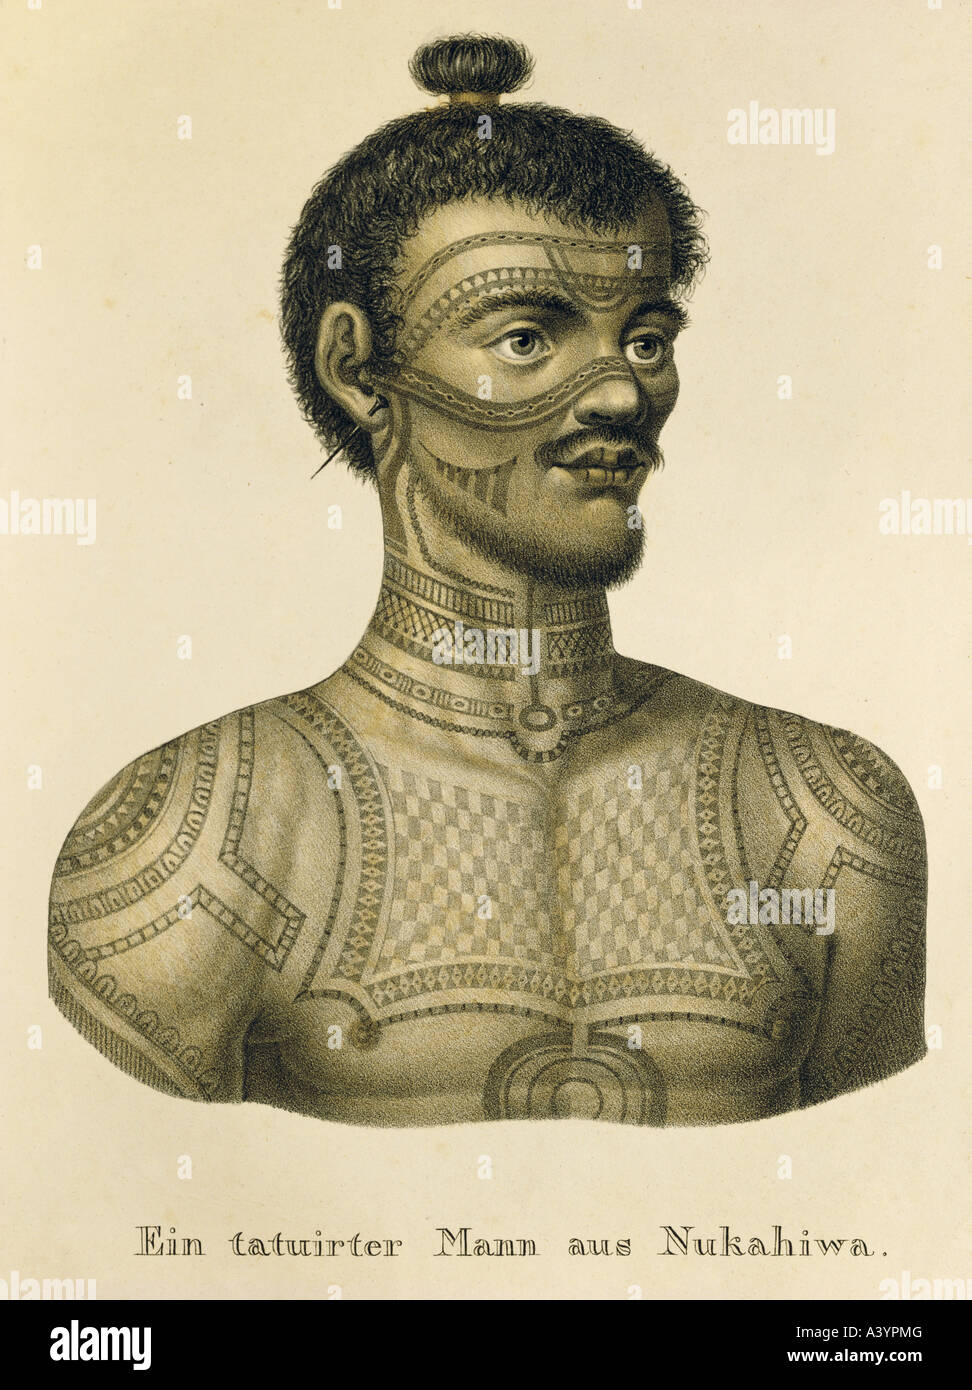 geography / travel, Polynesia, Marquesas Islands, Nuku Hiva, people, man with tattoos, colour lithograph, by K.J.Brodtmann, - Stock Image